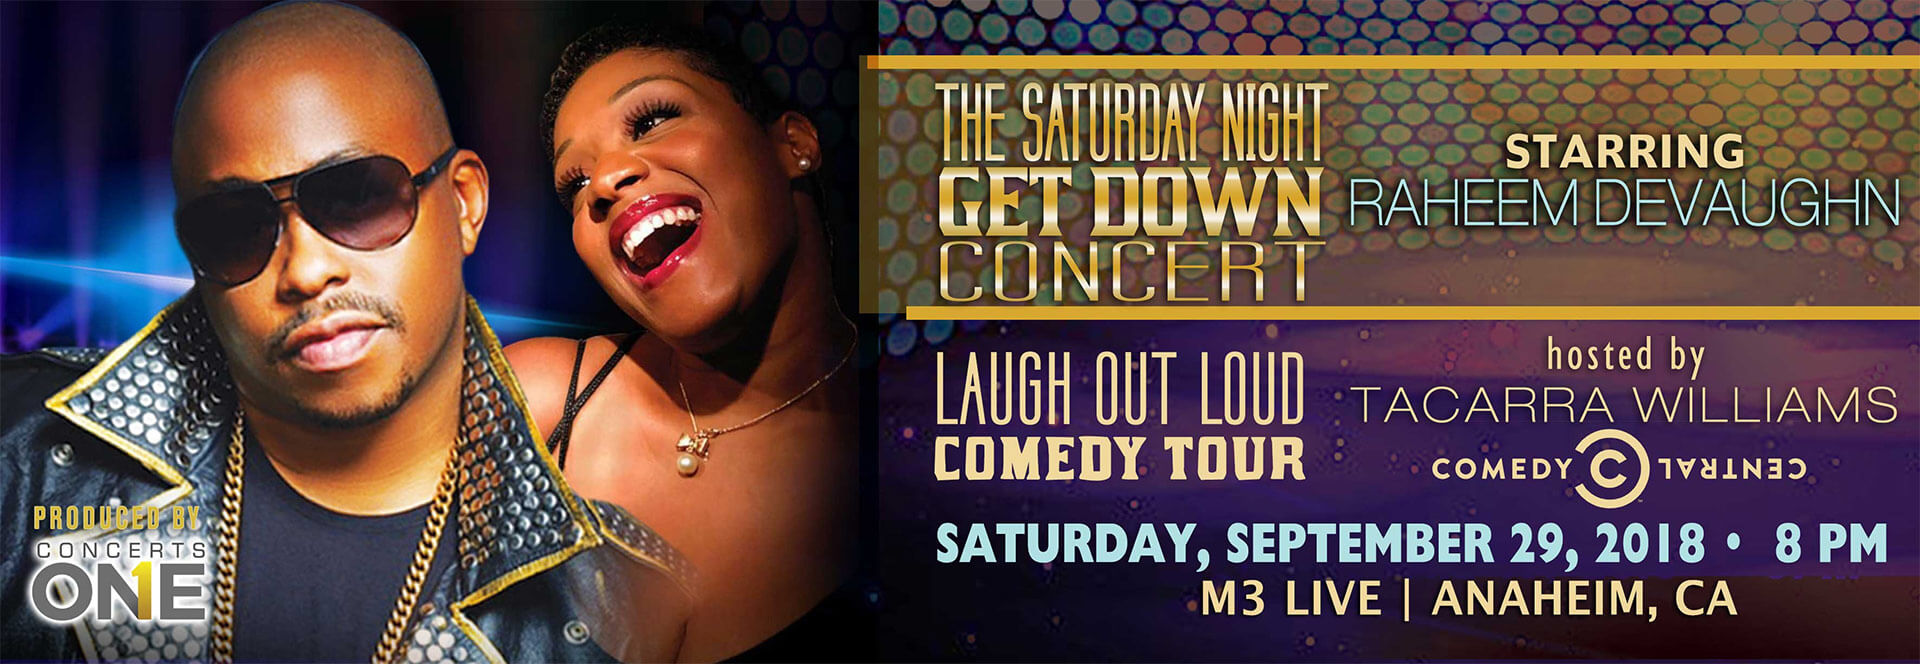 Saturday Night Get Down Concert Starring Raheem DeVaughn and the Laugh Out Loud Comedy Tour hosted by Tacarra Williams